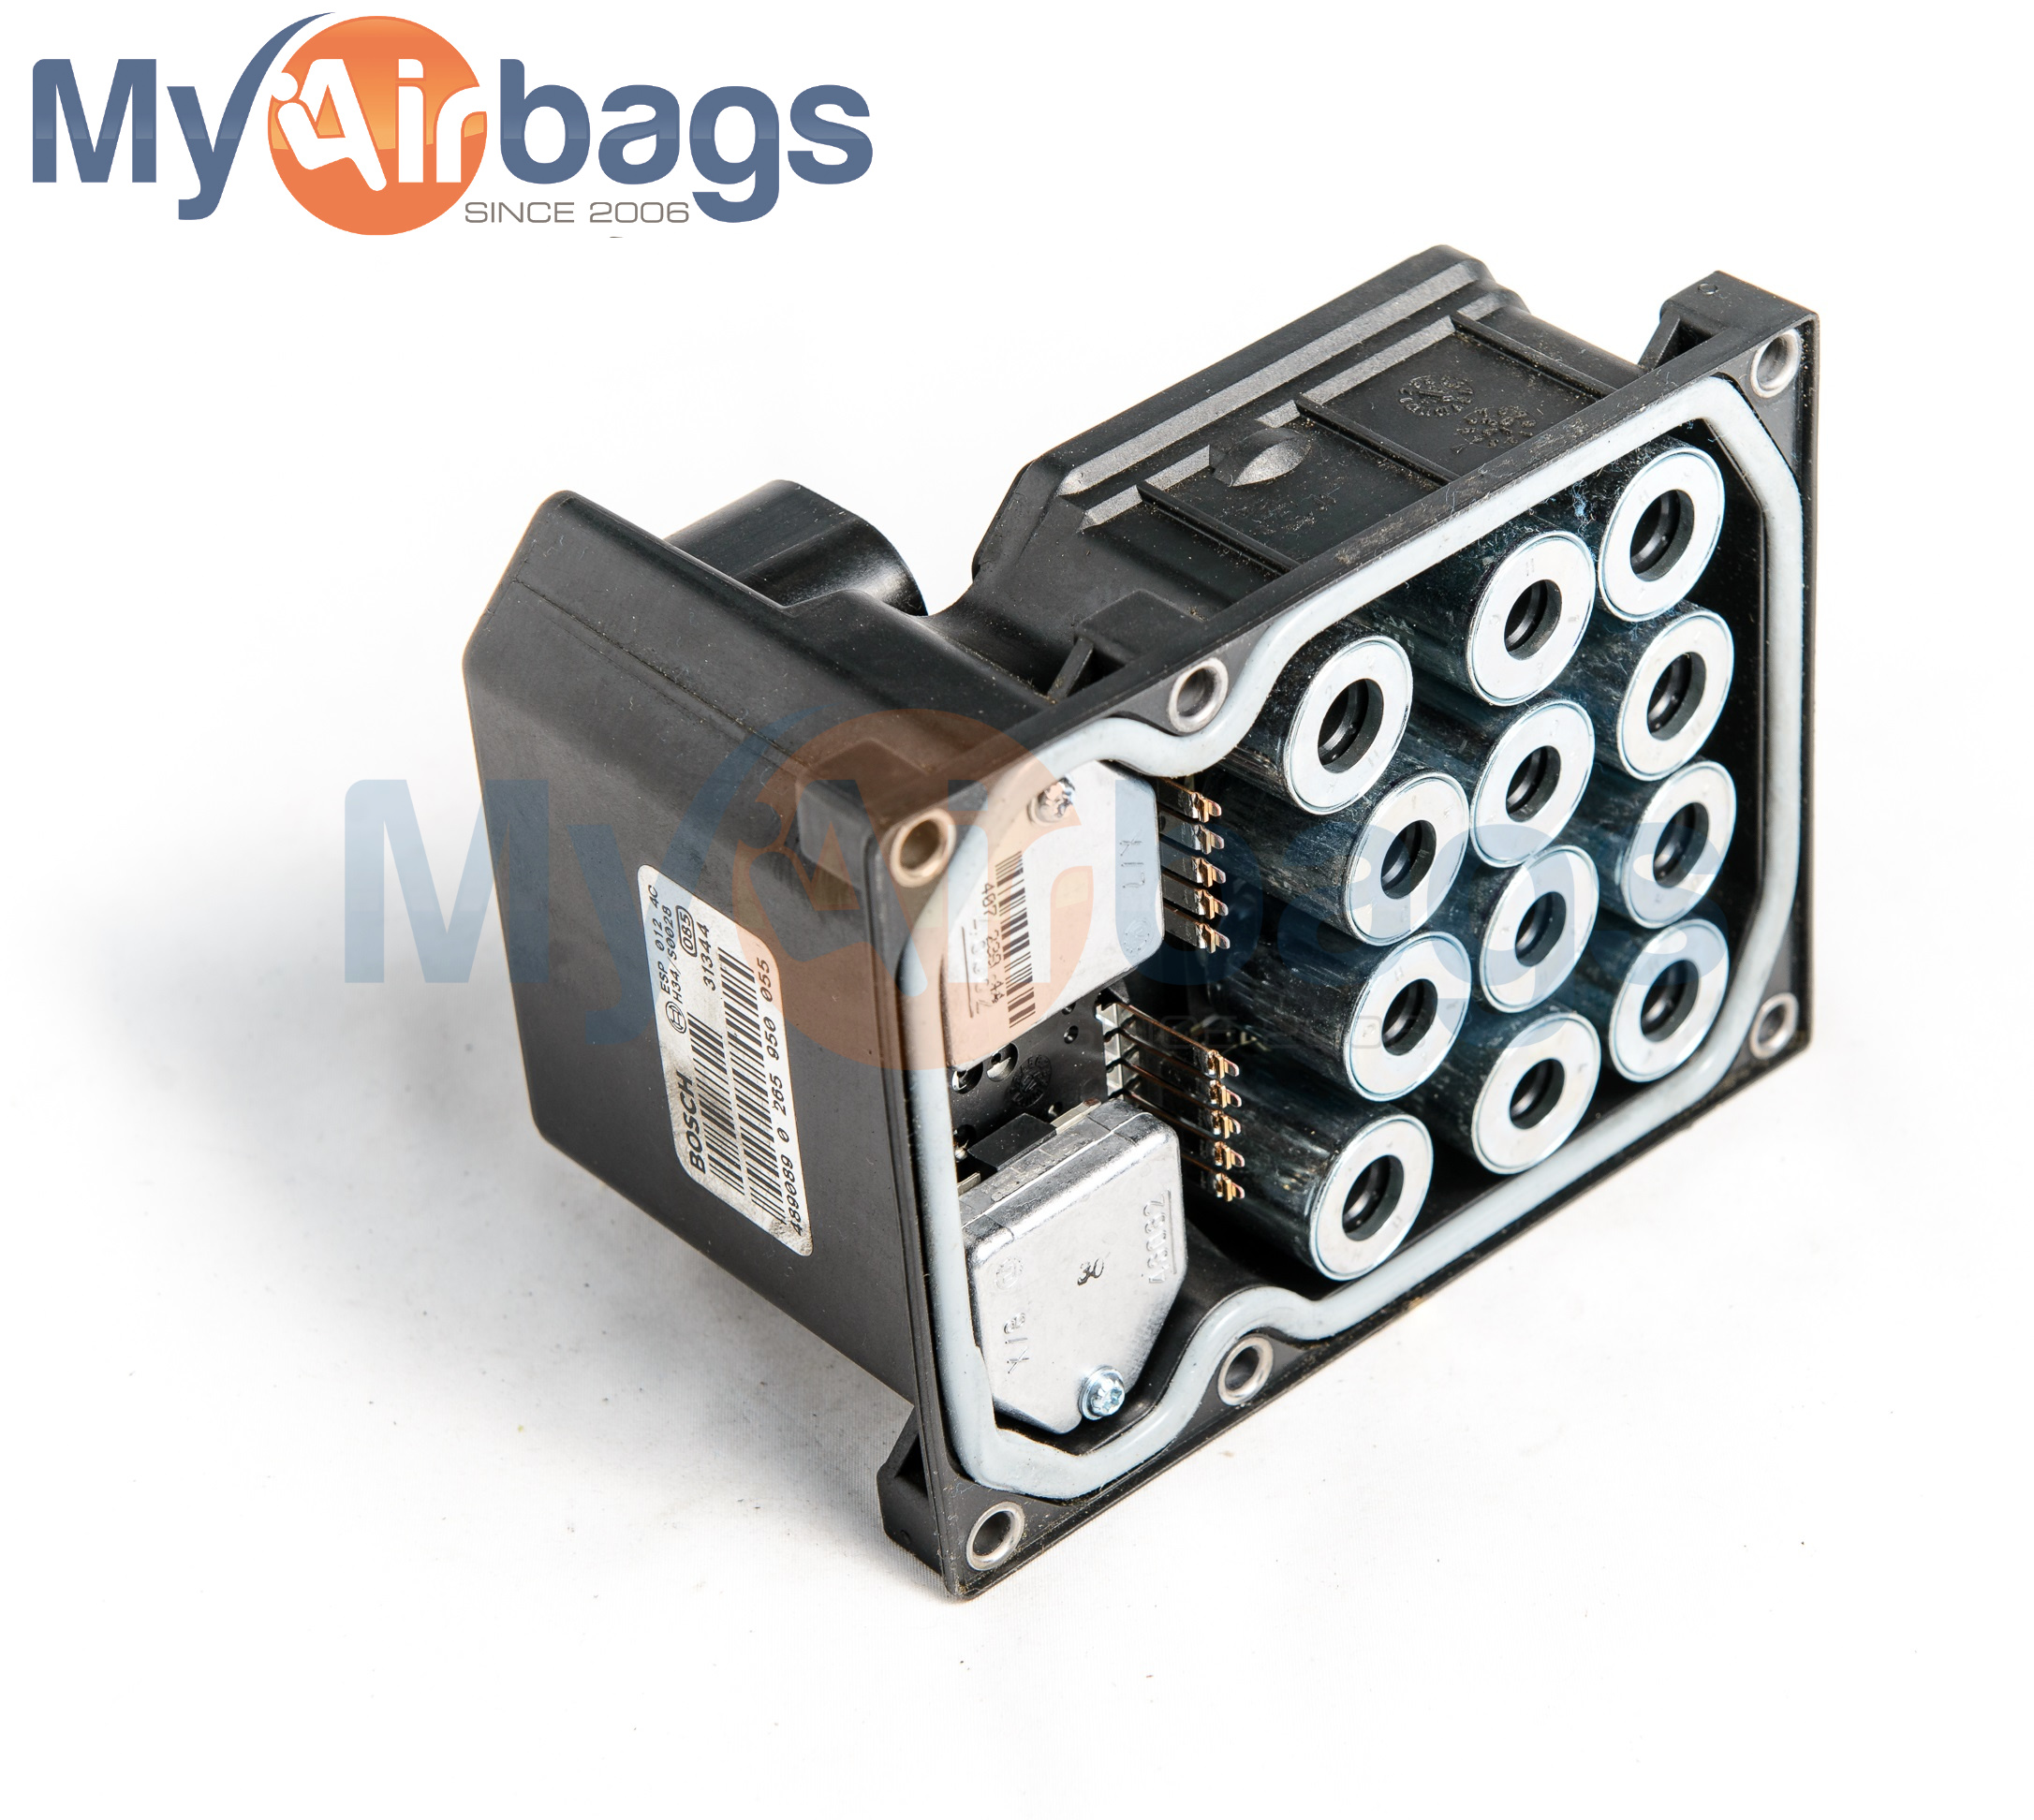 Myairbags Provides Bmw 7 Series Dsc 1998 2008 Abs Module